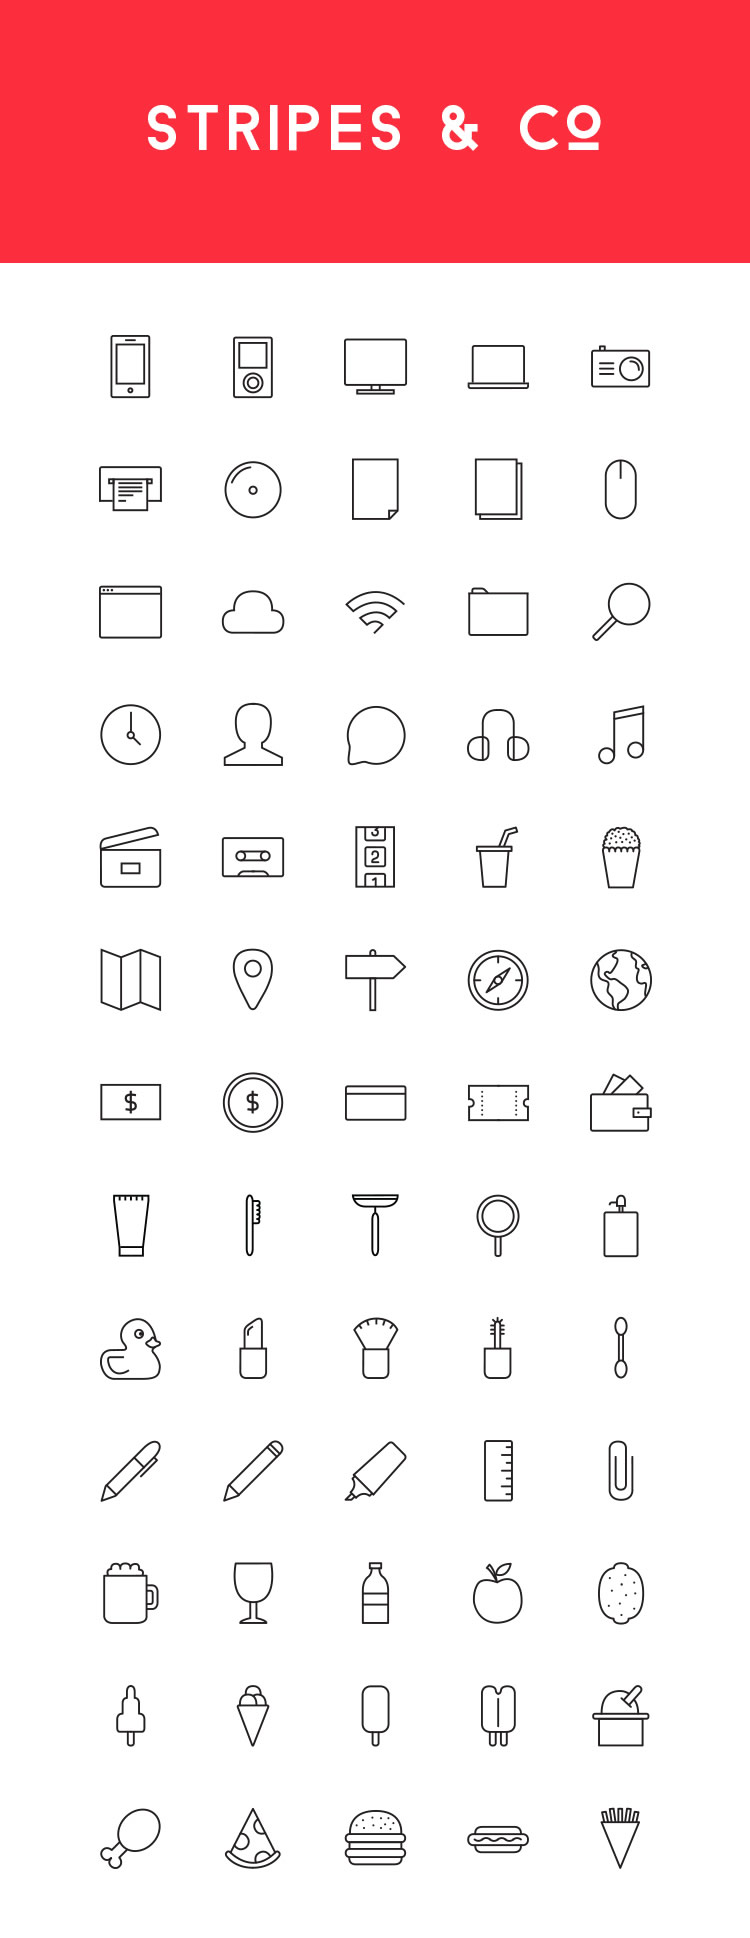 Stripes & Co line icon set Small Preview